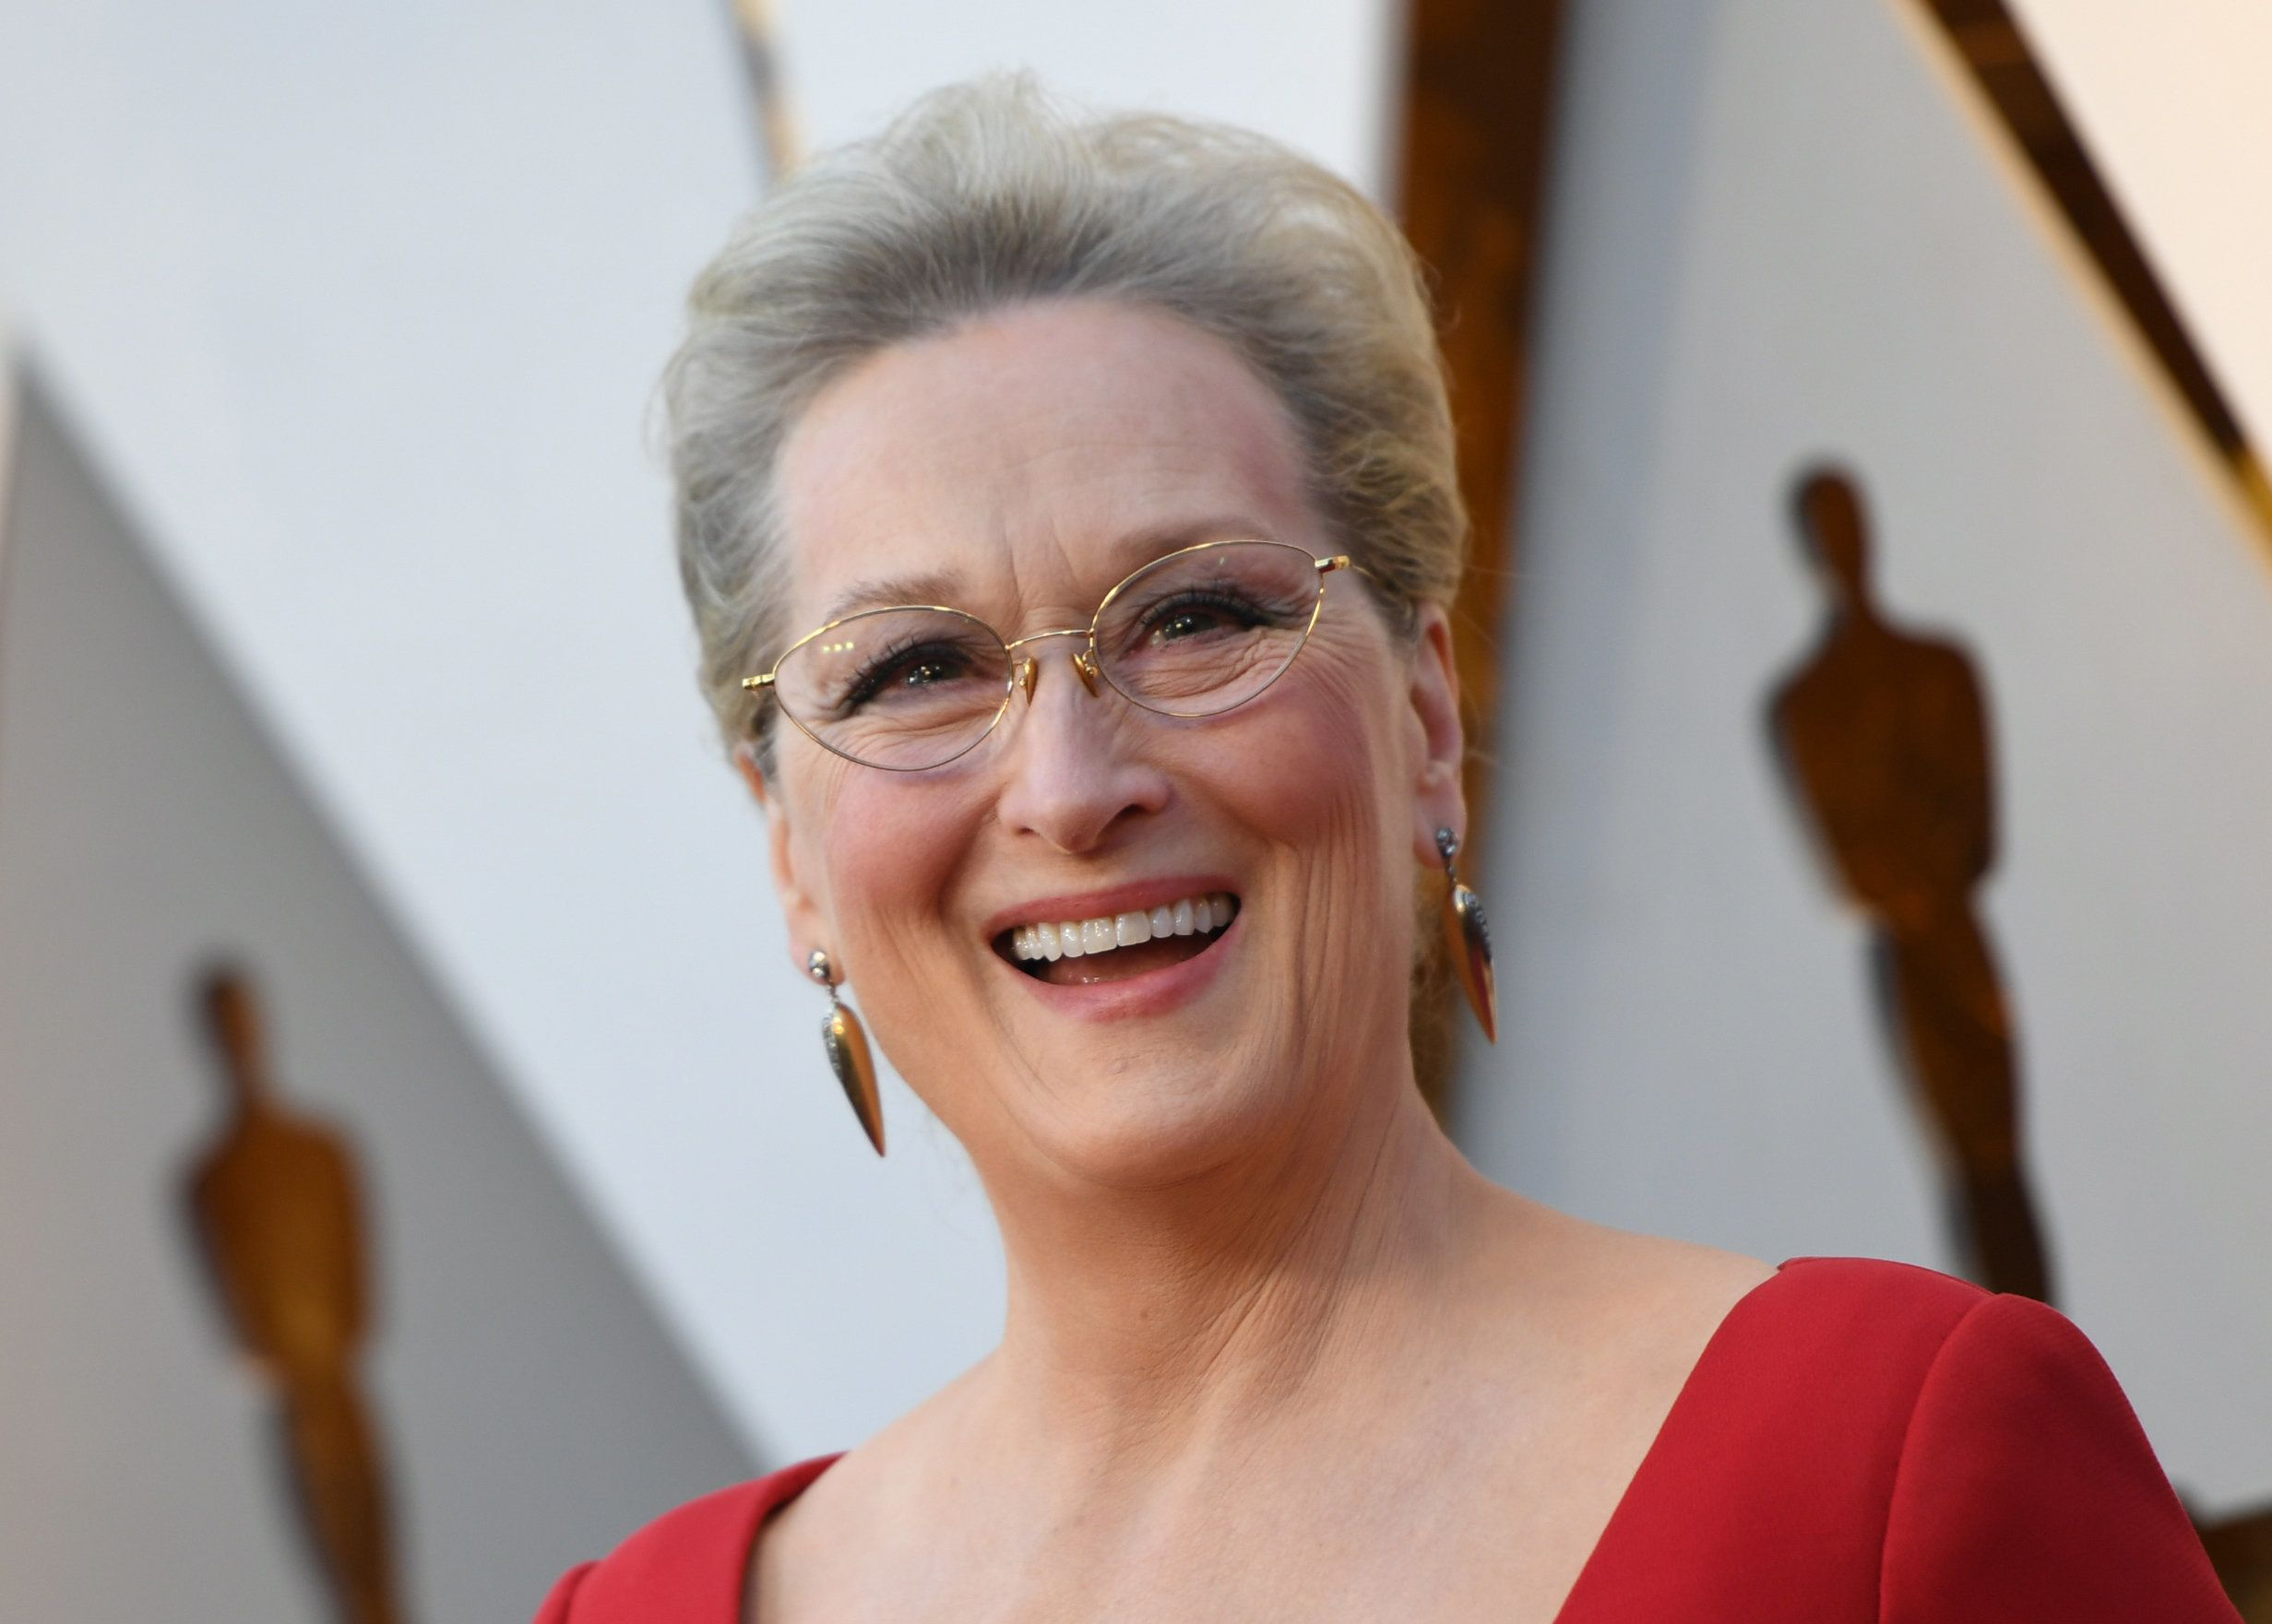 TOPSHOT - Actress Meryl Streep arrives for the 90th Annual Academy Awards on March 4, 2018, in Hollywood, California.  / AFP PHOTO / VALERIE MACON        (Photo credit should read VALERIE MACON/AFP/Getty Images)